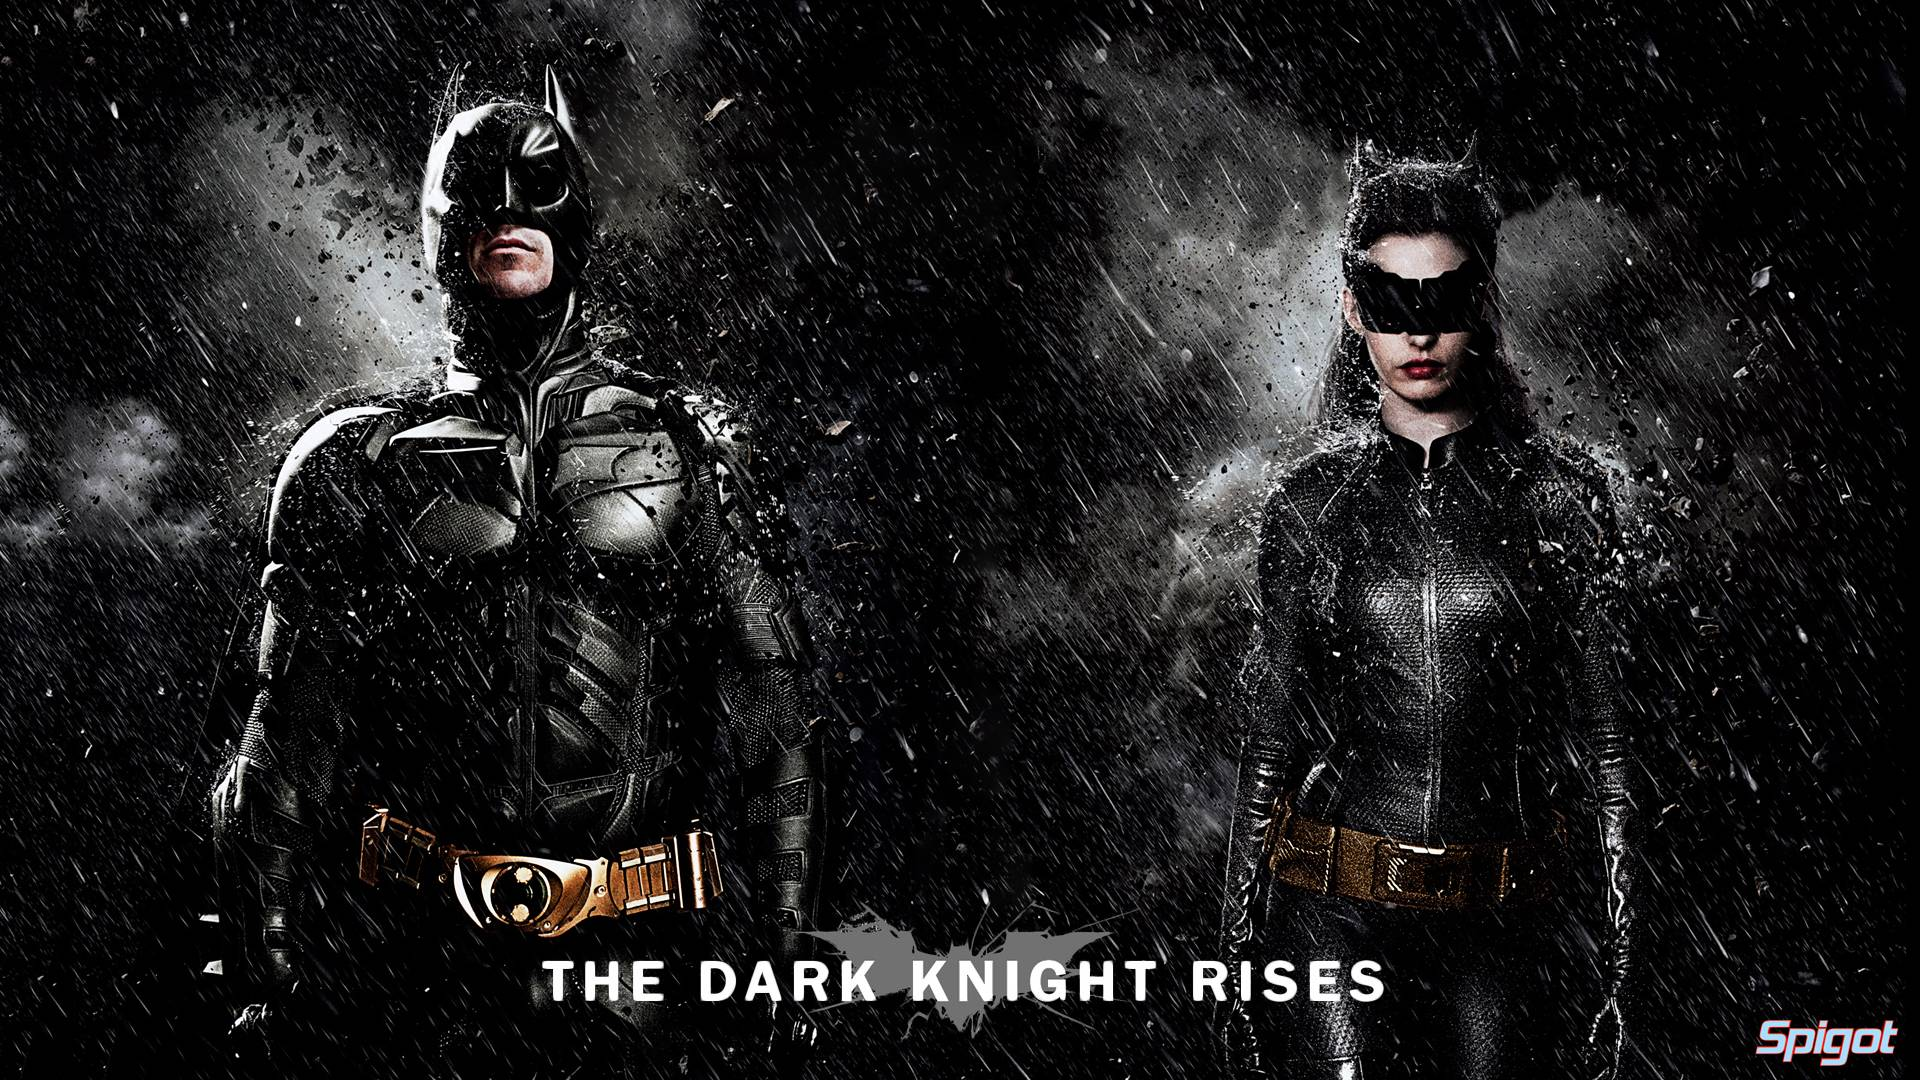 Batman the dark knight rises wallpapers wallpaper cave wallpapers for batman the dark knight rises wallpaper hd voltagebd Image collections